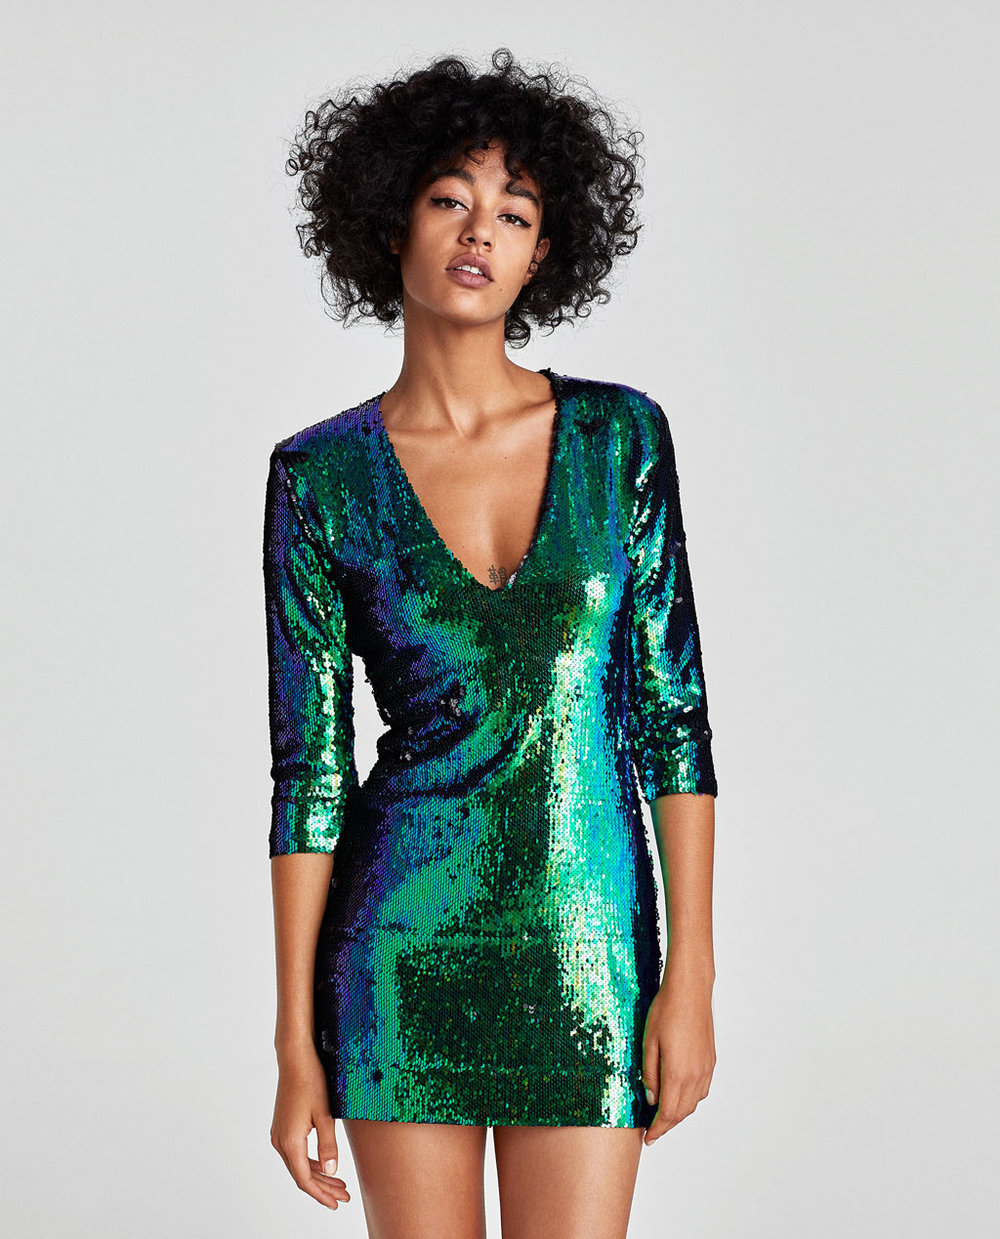 Zara Sequinned Dress - £39.99